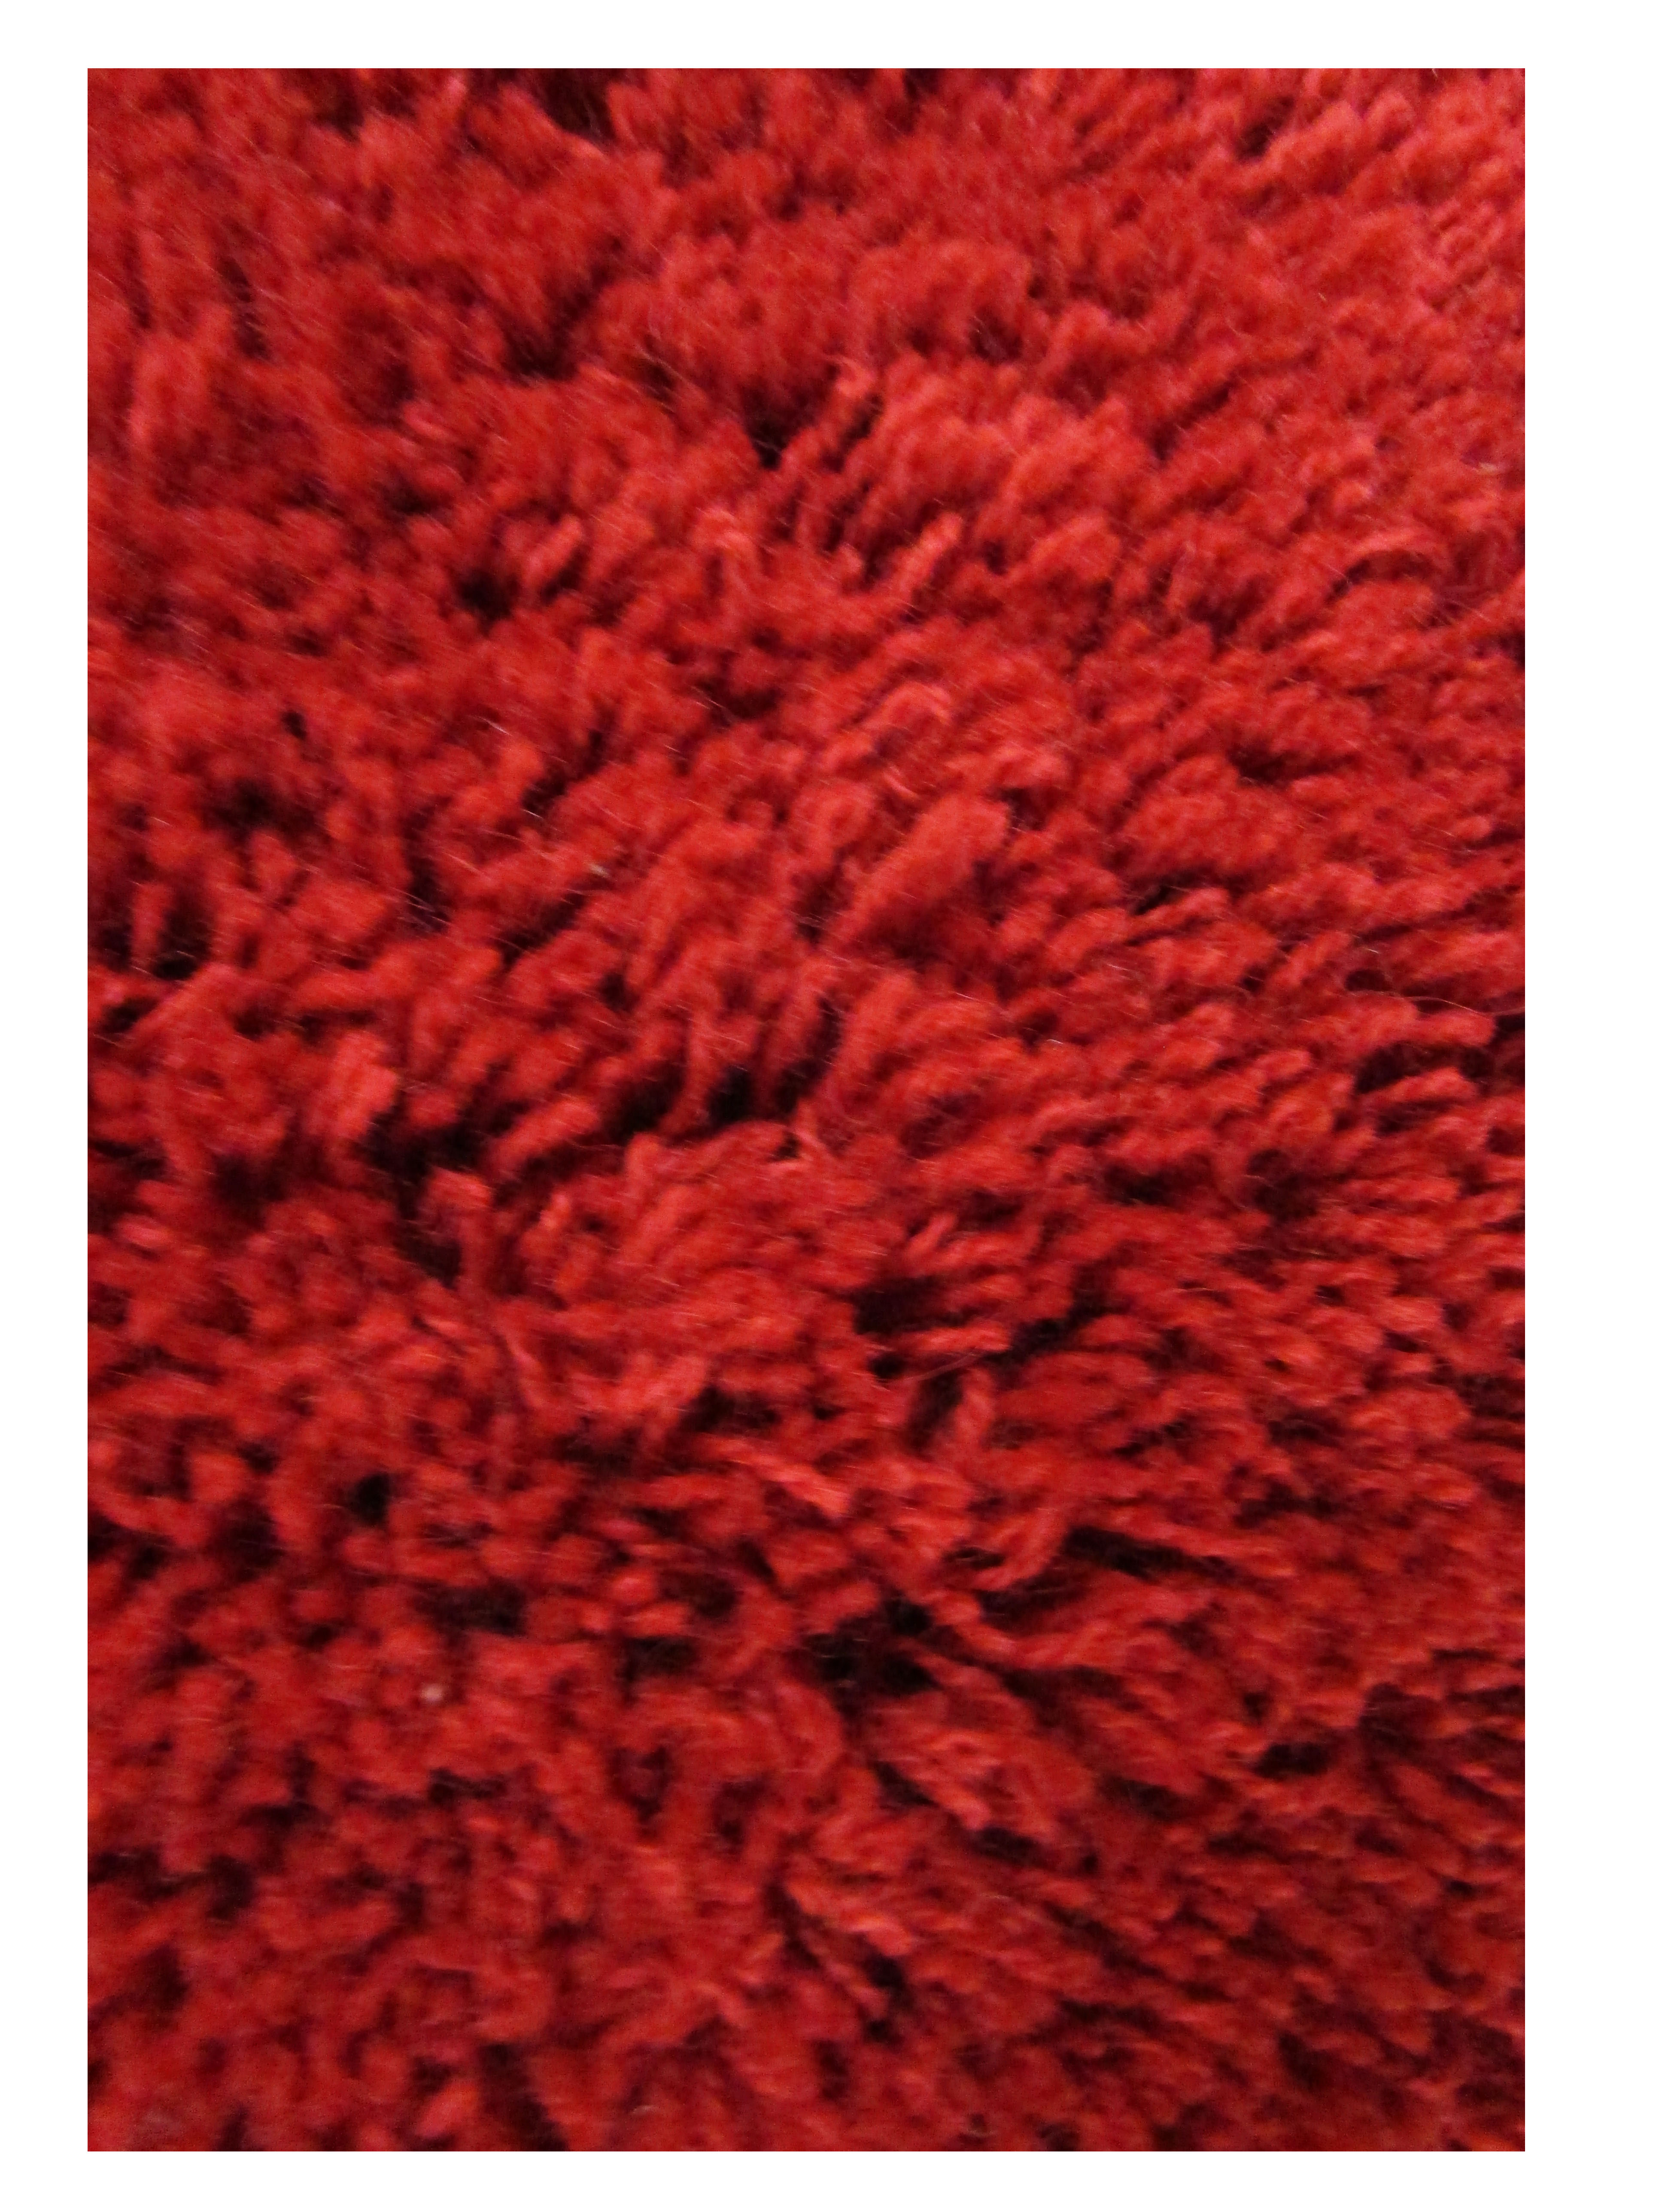 Apple Red Wool Shag Rug